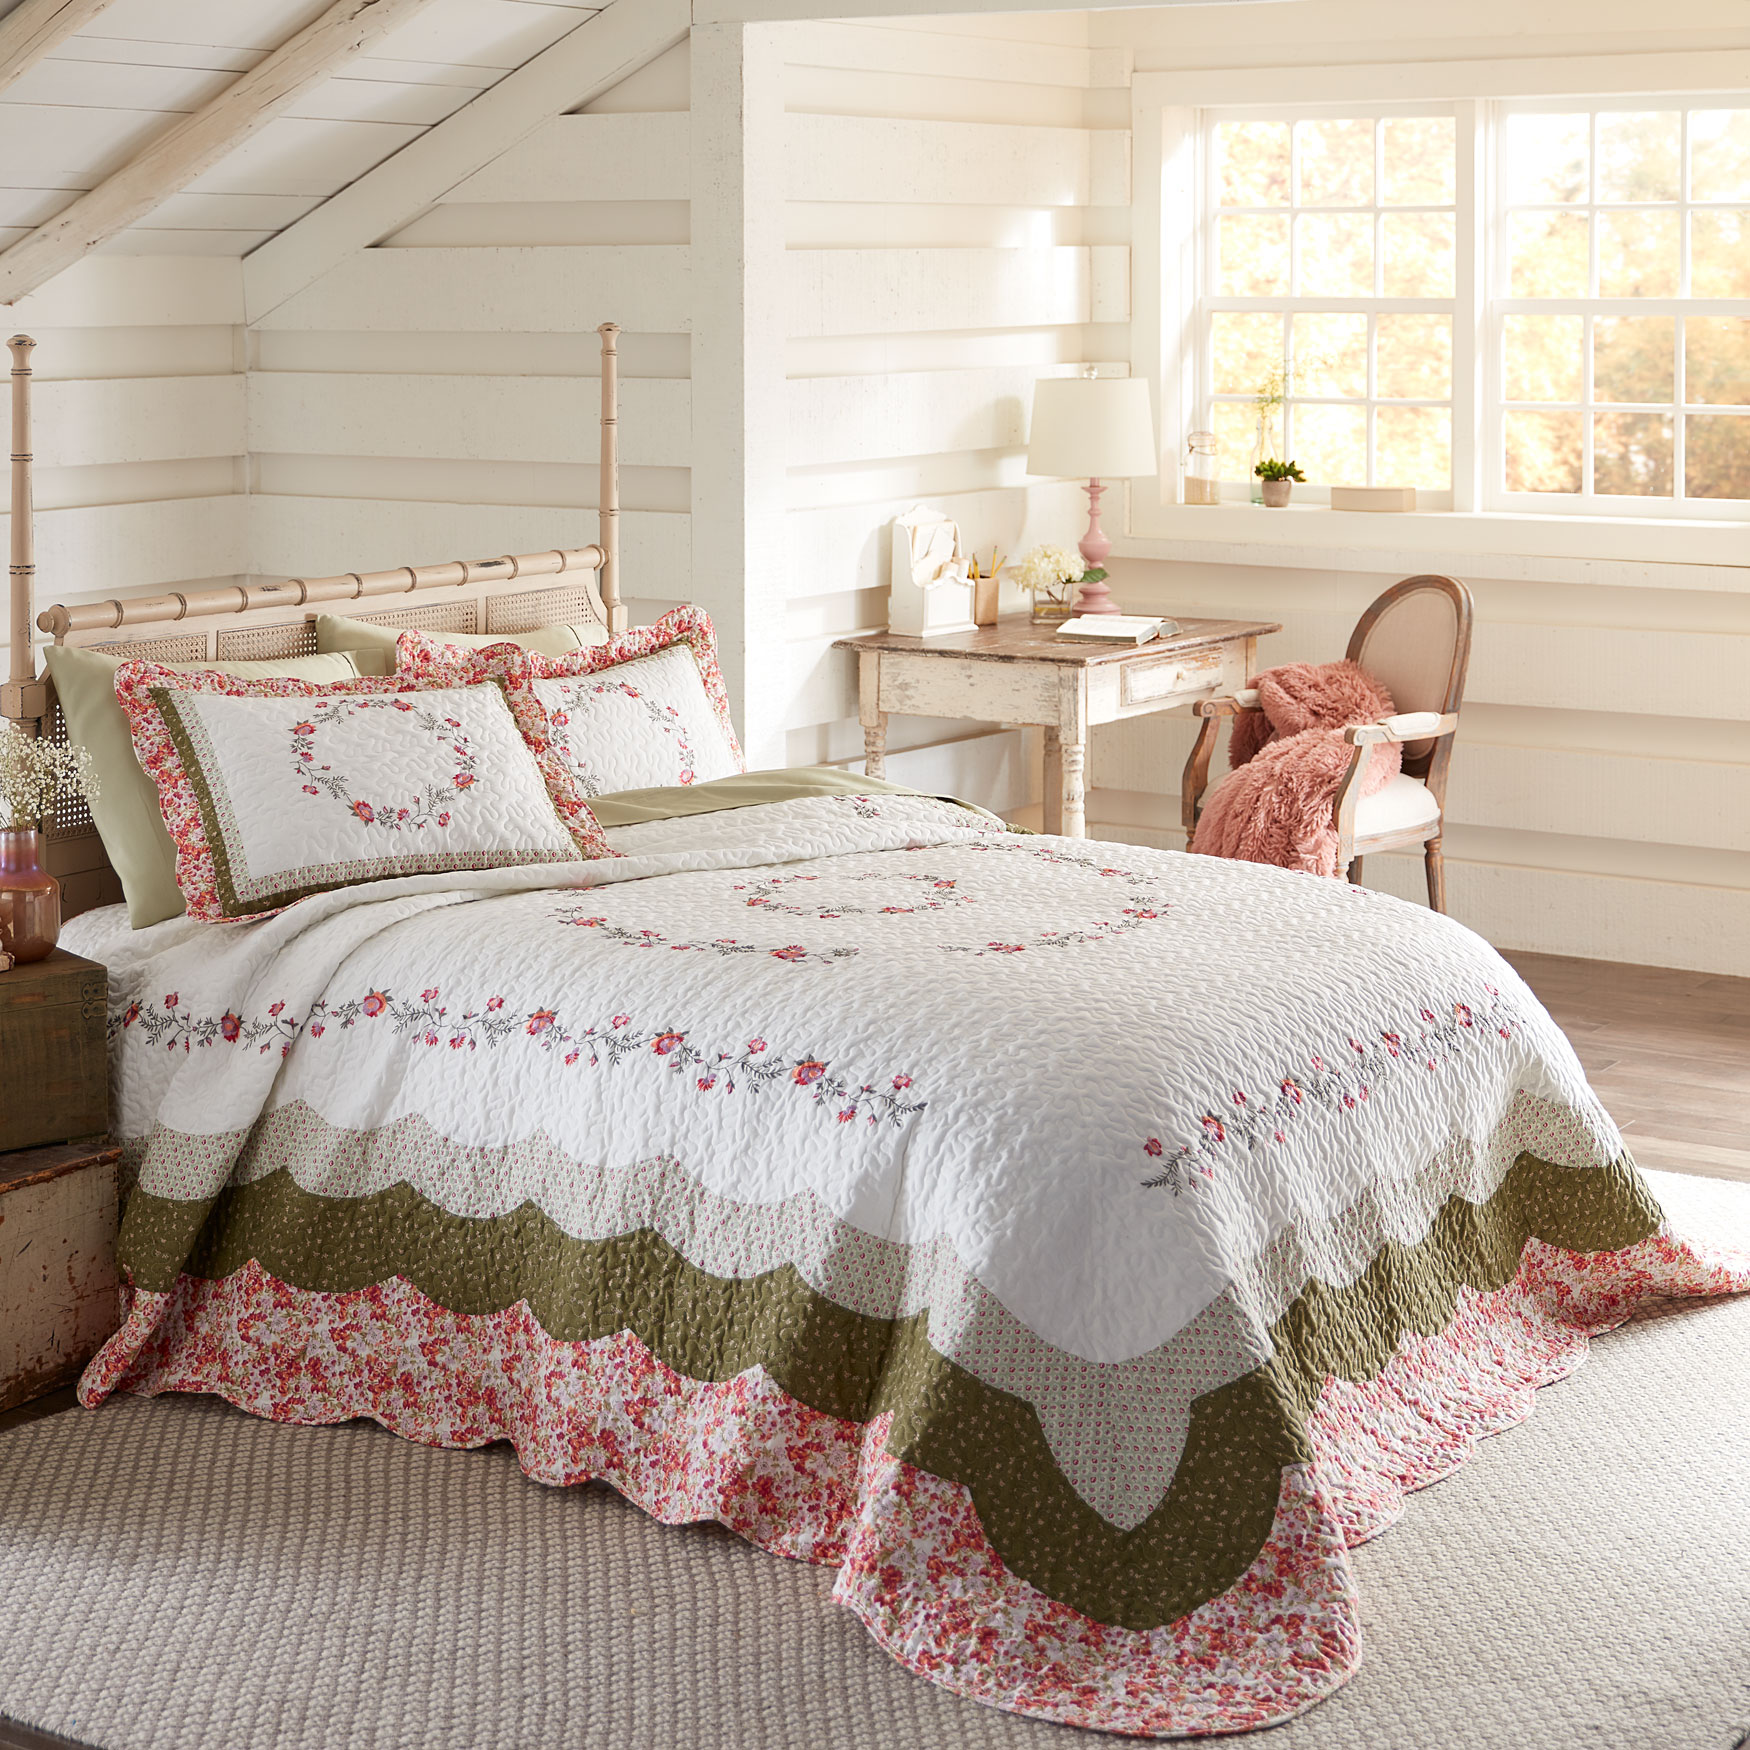 Bernice Embroidered Floral Bedspread,